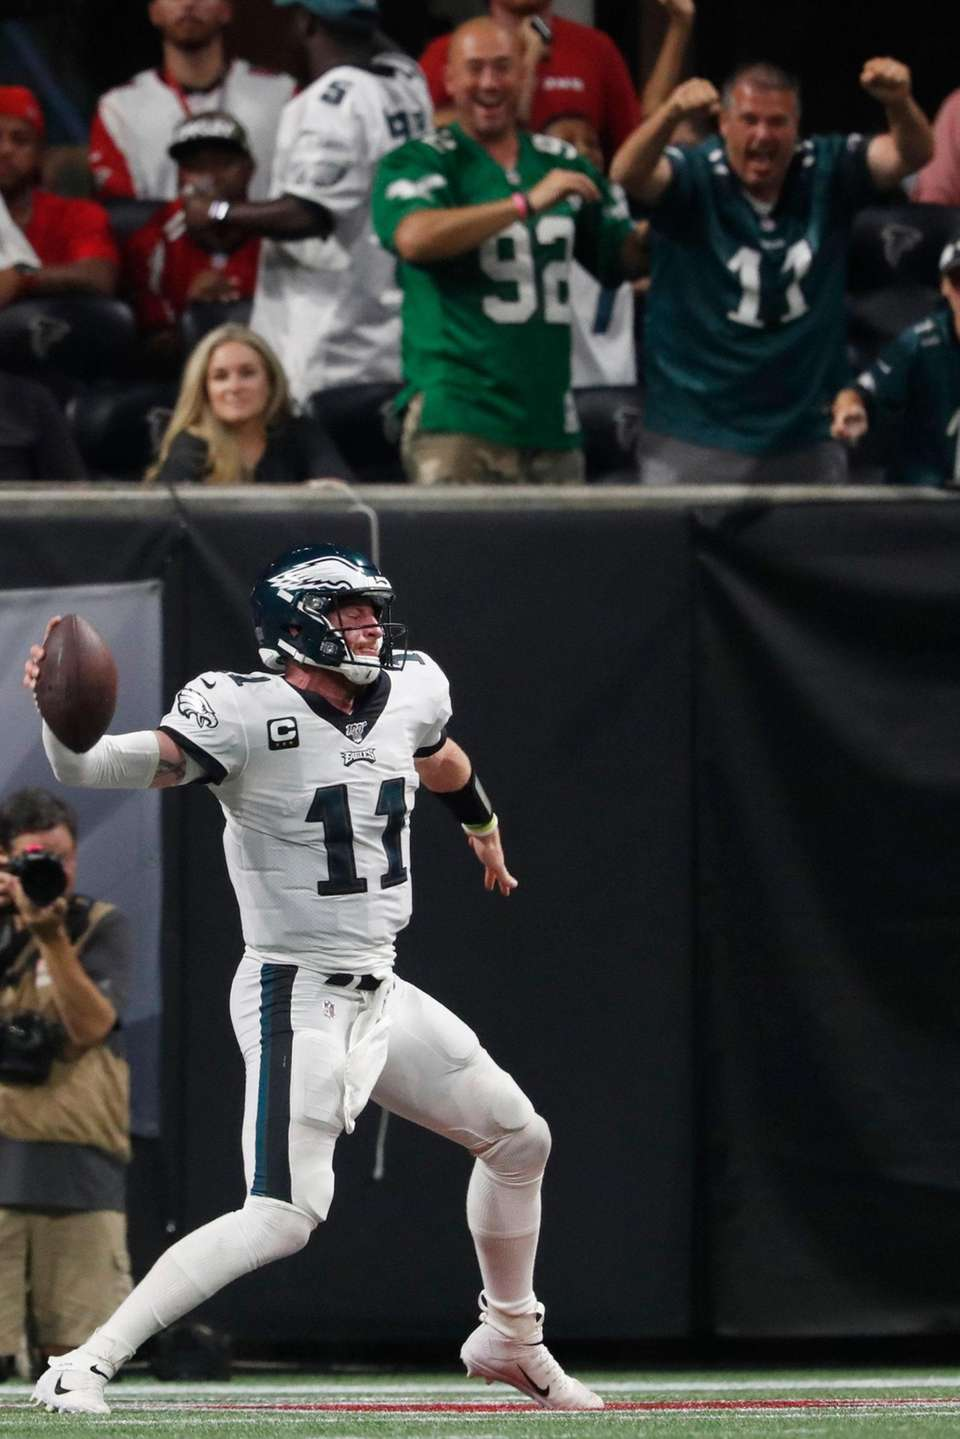 Philadelphia Eagles quarterback Carson Wentz spikes the ball